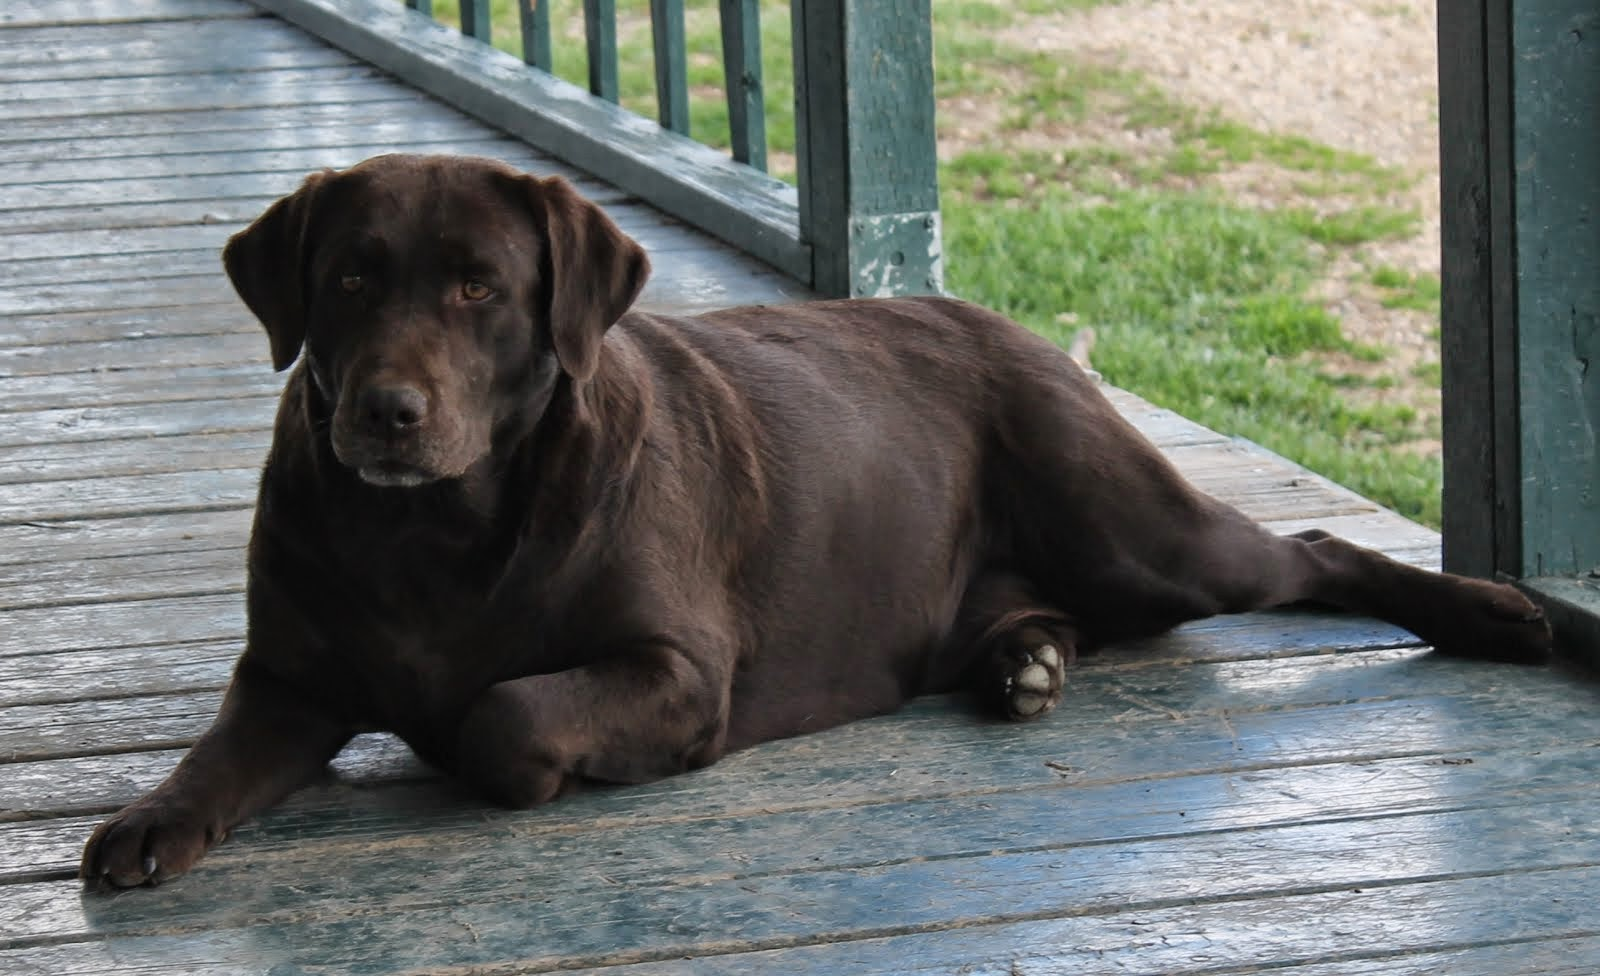 BUCKMOUNTAIN'S MISS JERSEY GIRL (NOW RETIRED AND LIVING WITH HER LAB BROTHER RIPLEY)